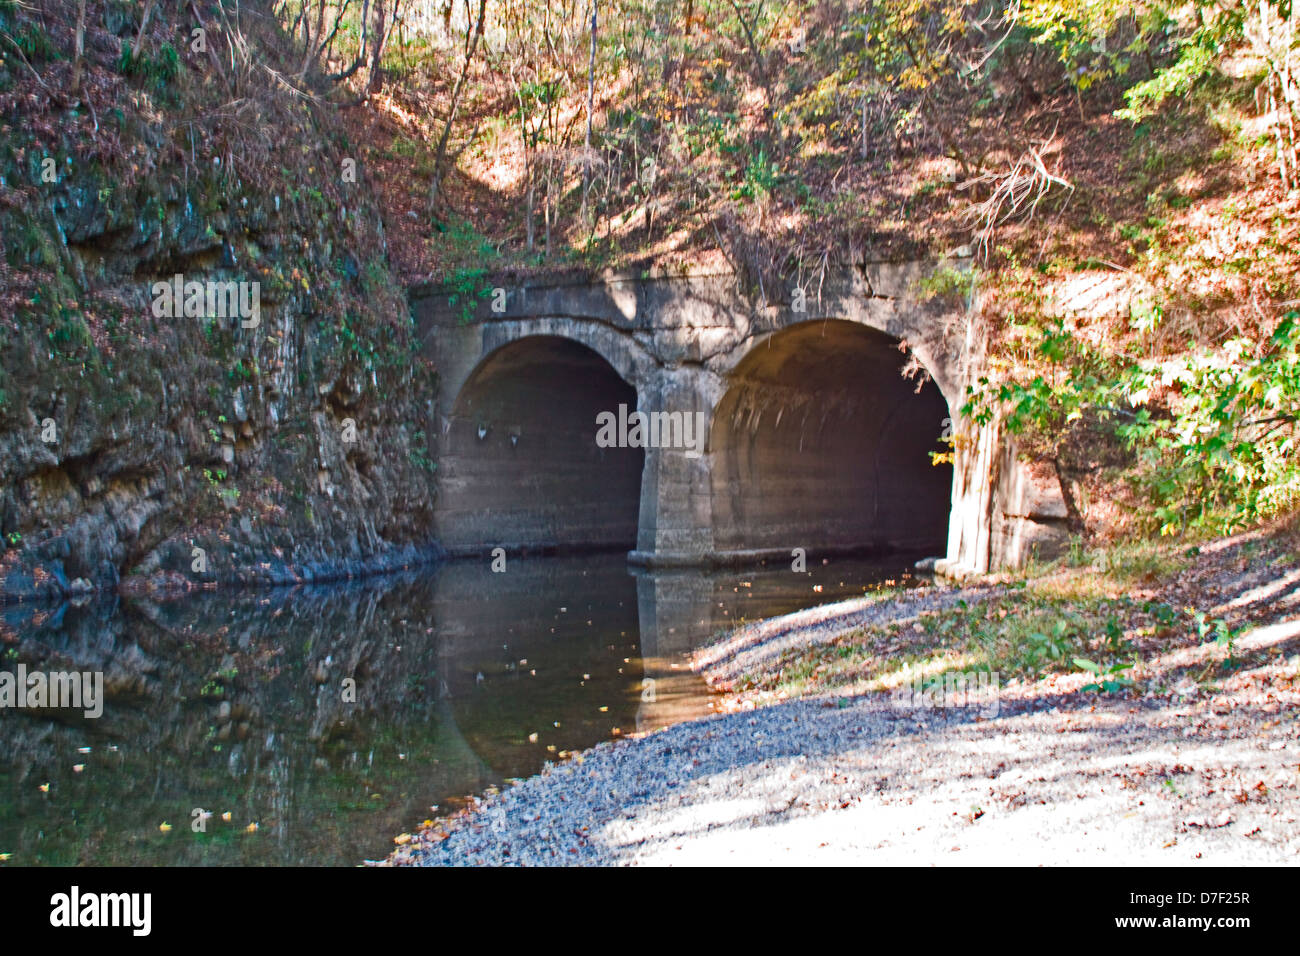 Fifteen Mile Creek flowing through duel stone culverts under an